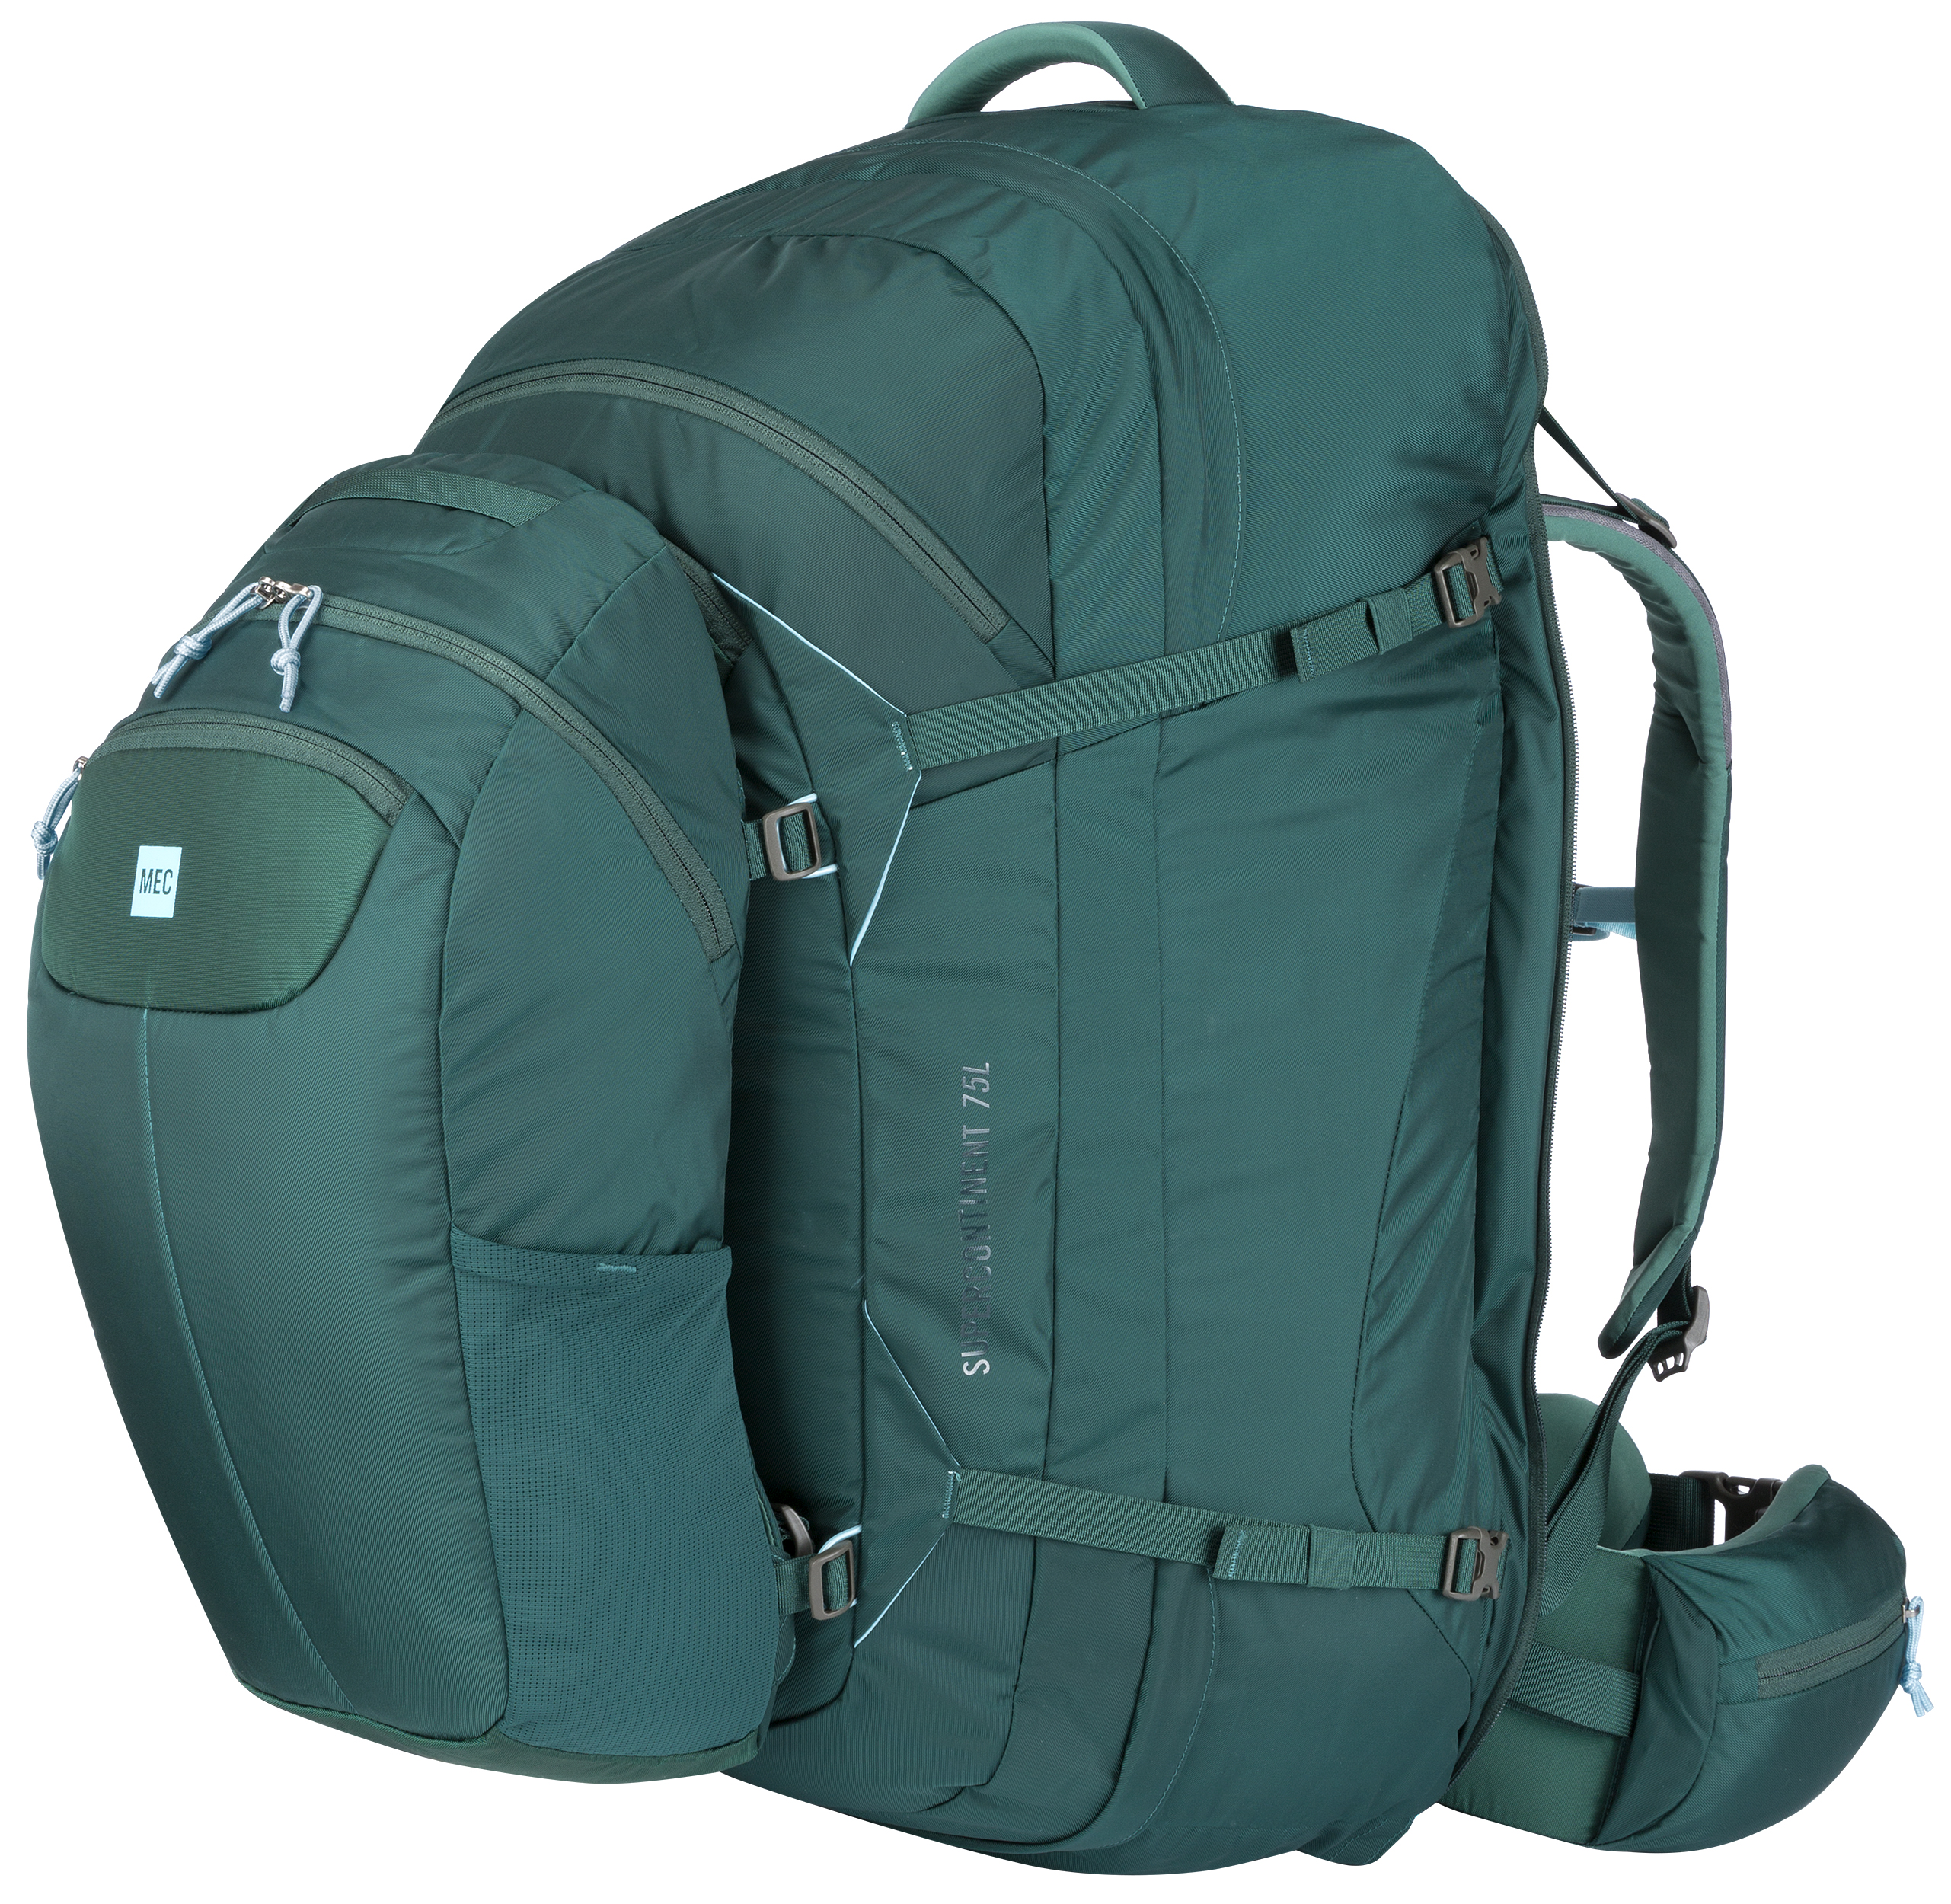 MEC Supercontinent 75 Travel Pack - Women's